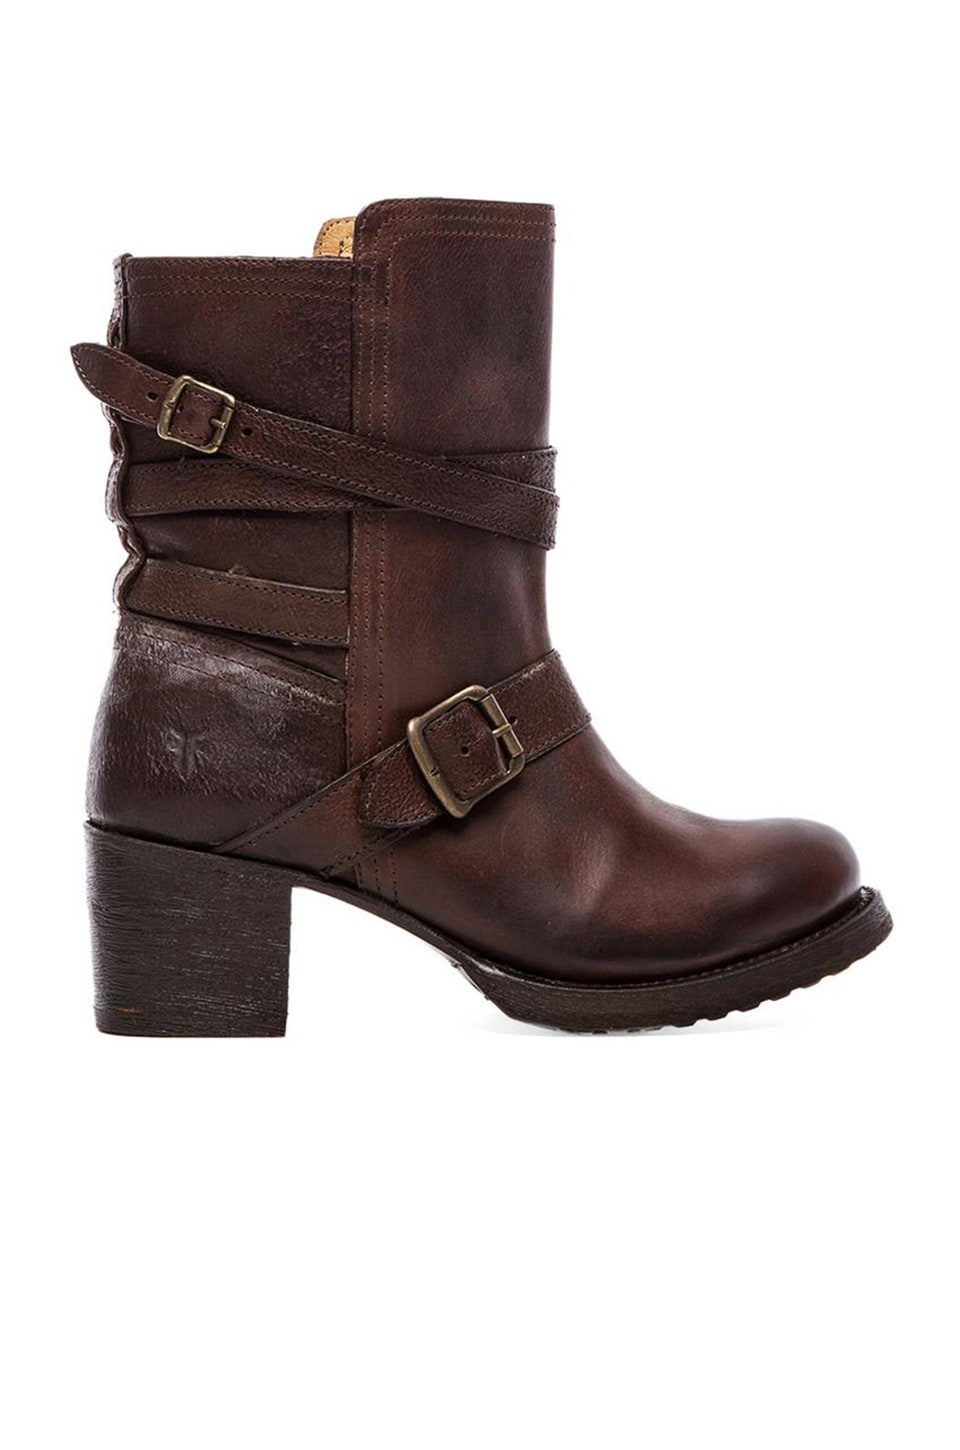 Frye Vera Strappy Boot in Brown